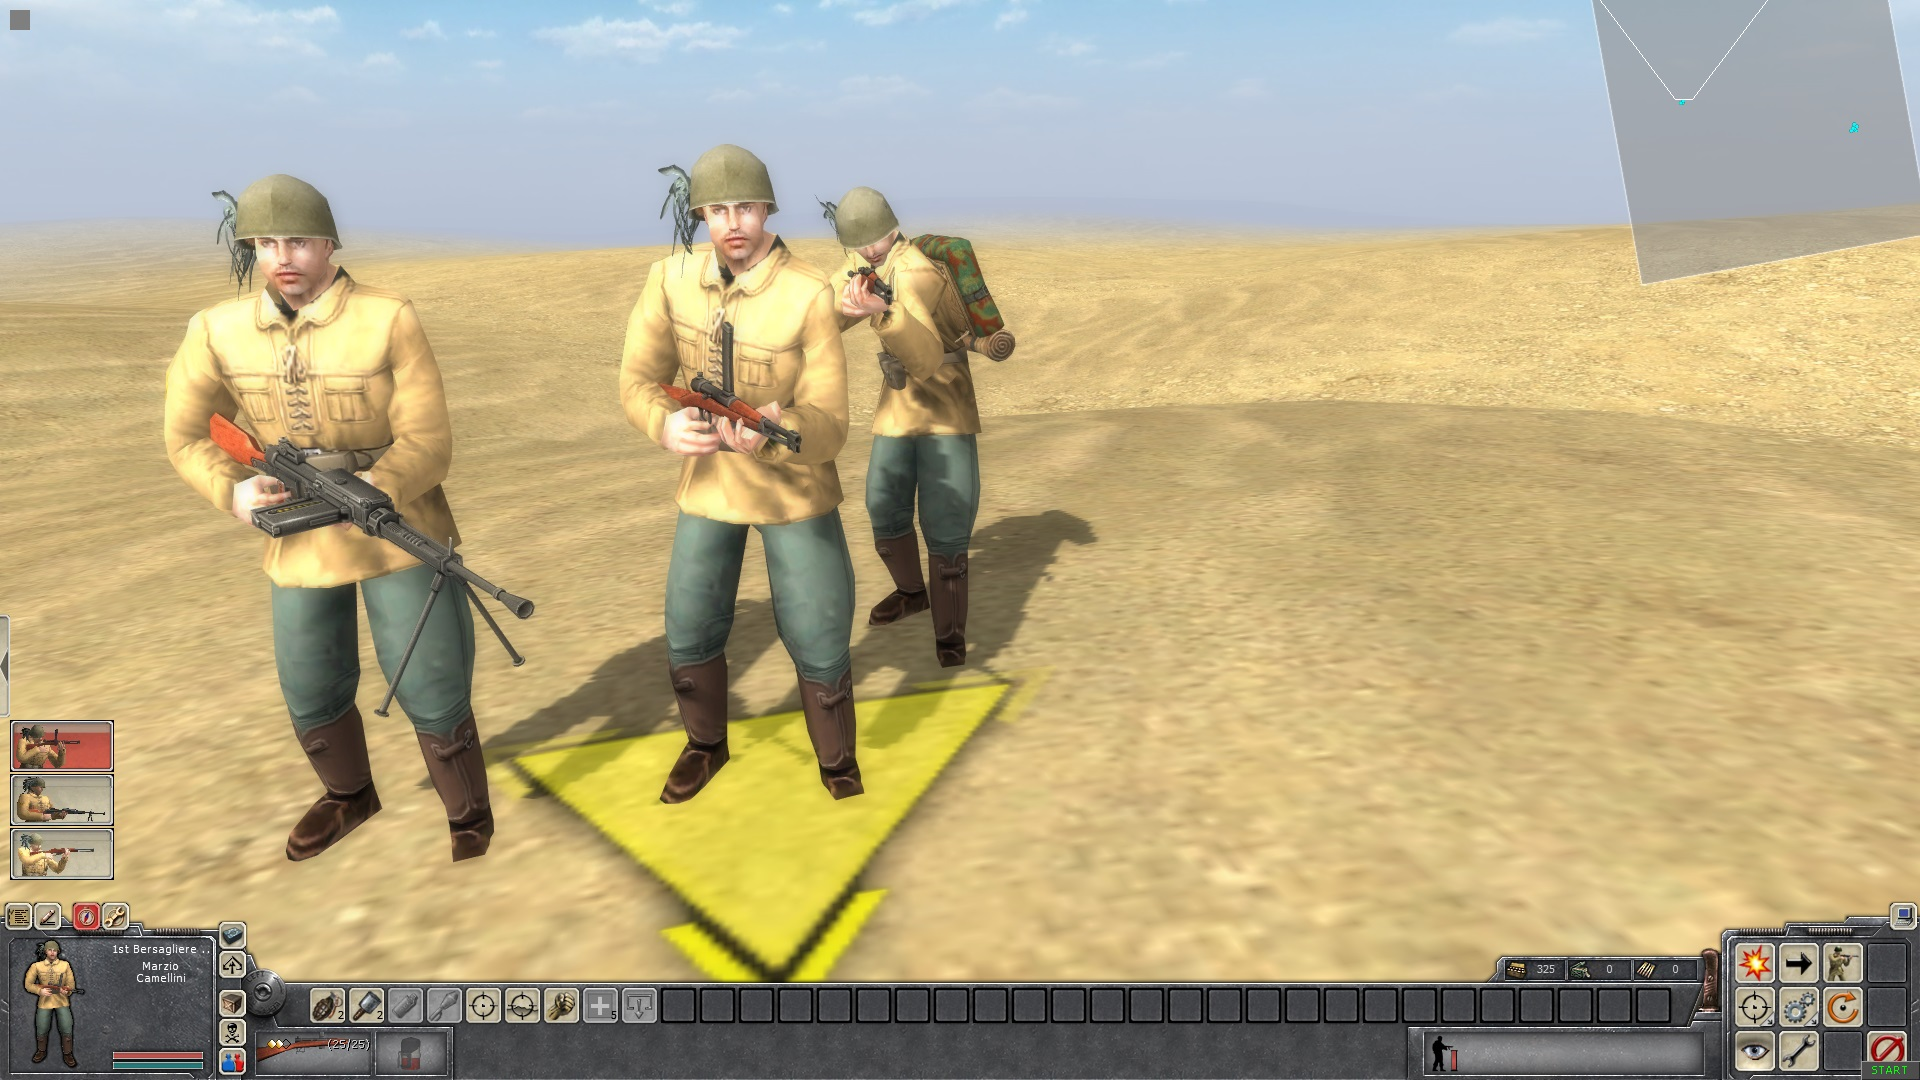 Soviet troops - infantry pack image - dynamic campaign generator (dcg) mod for men of war